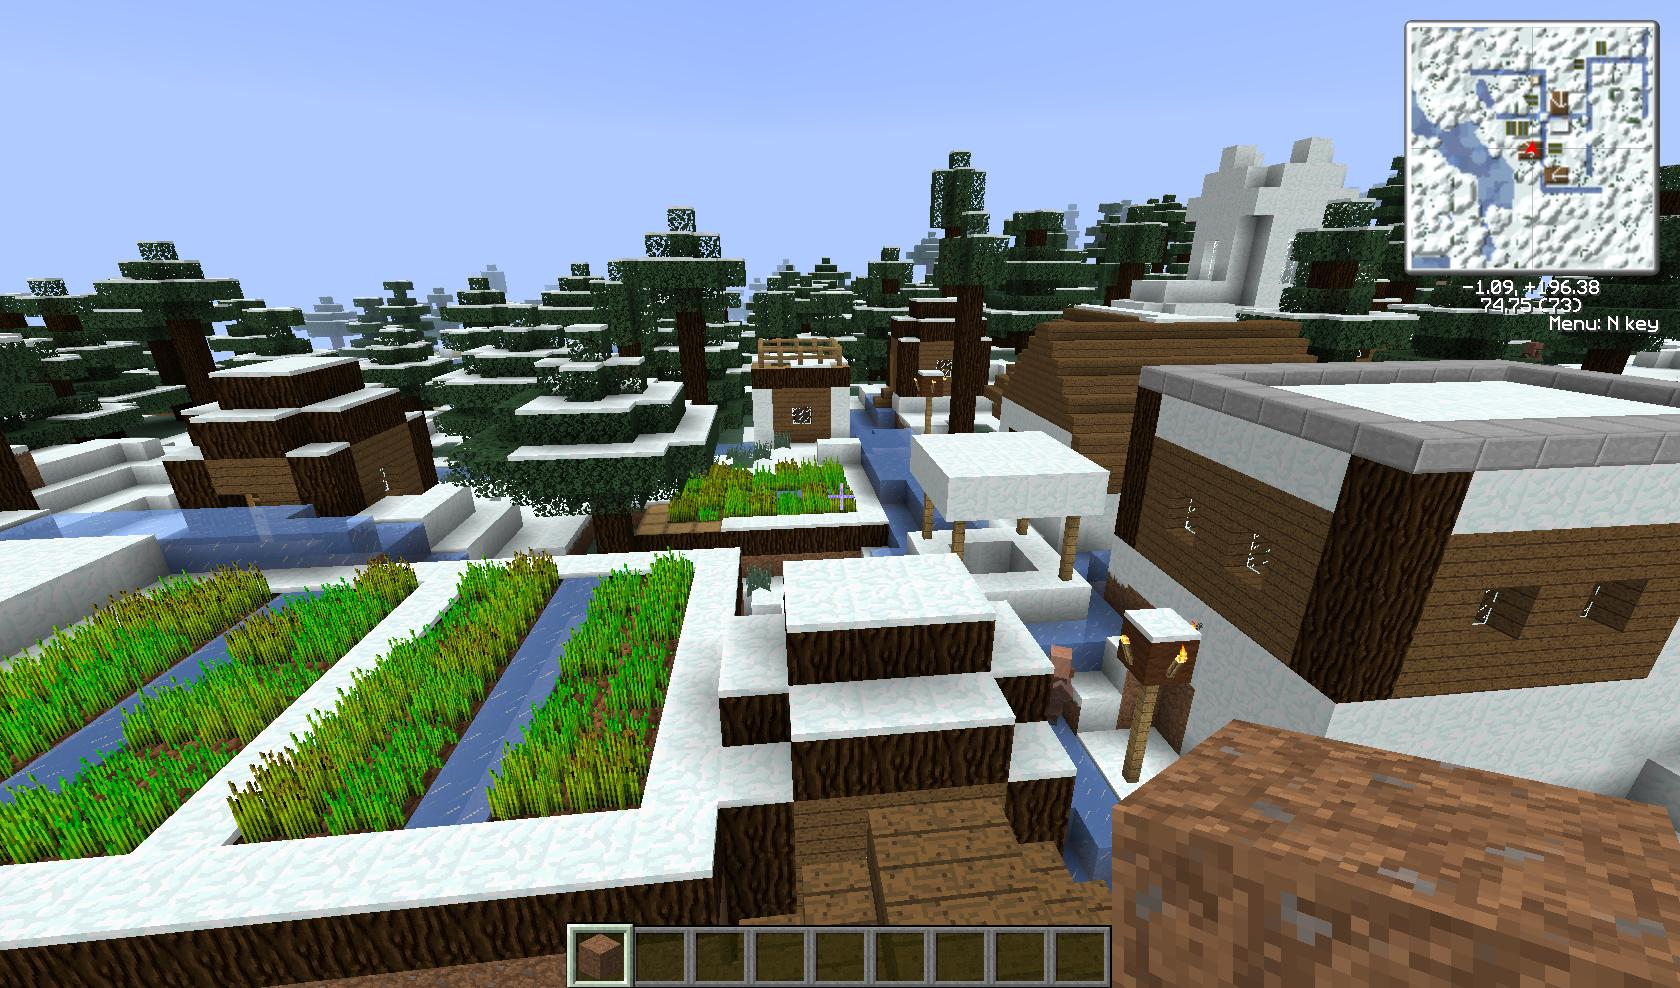 77c4b  More Village Biomes Mod 3 More Village Biomes Screenshots